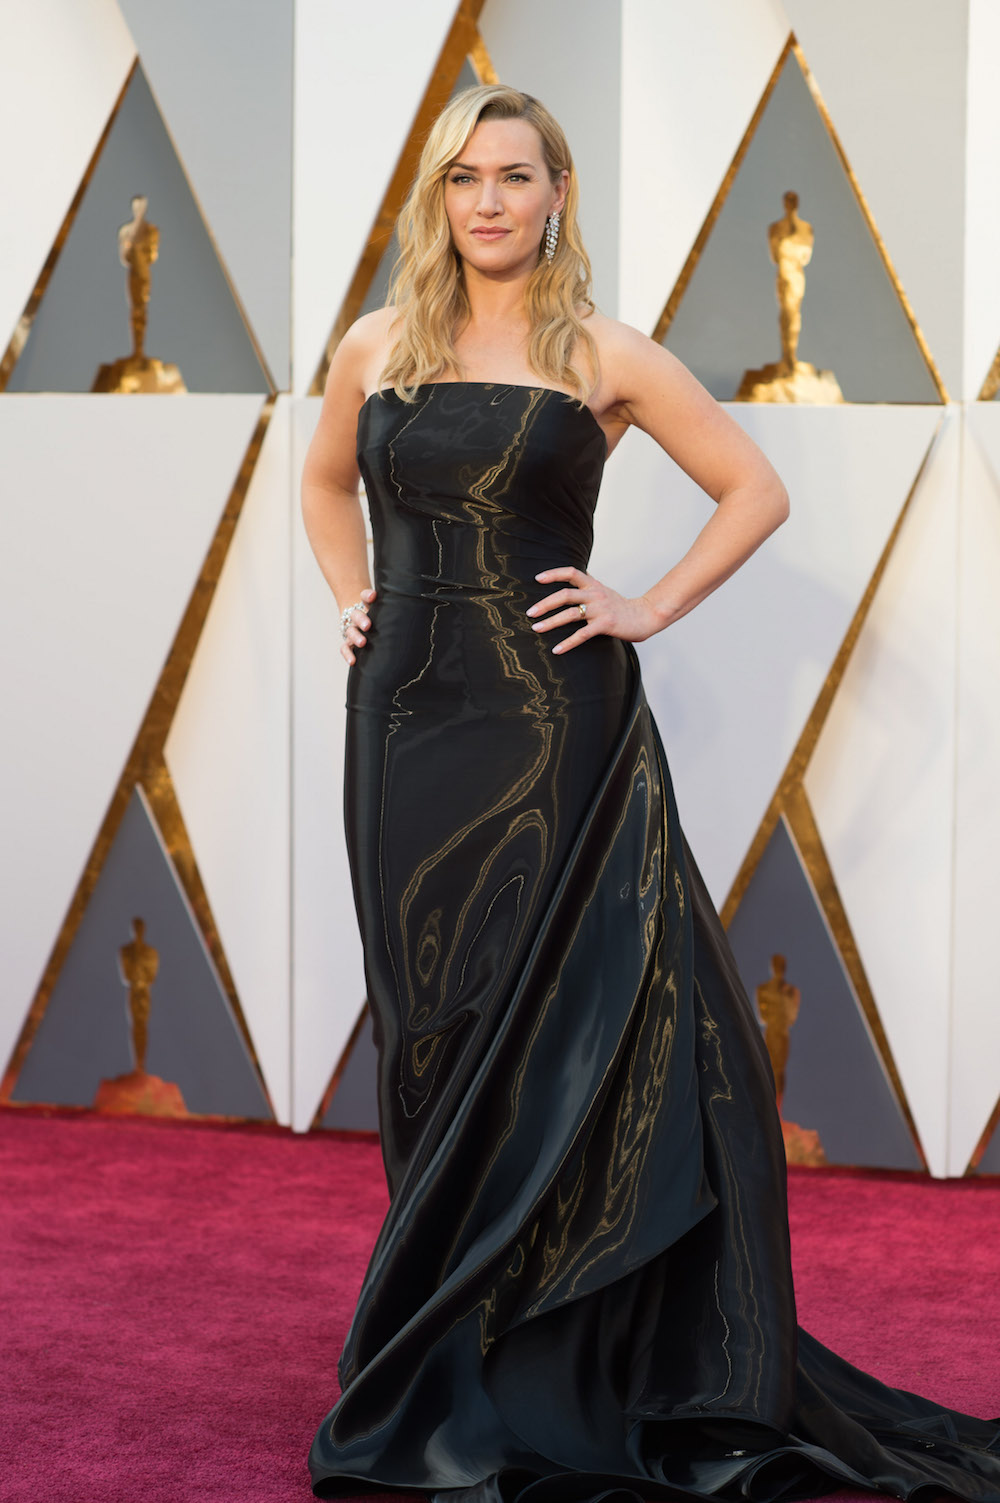 oscars Kate Winslet in Ralph Lauren dress kleid designer ralph lauren modepilot